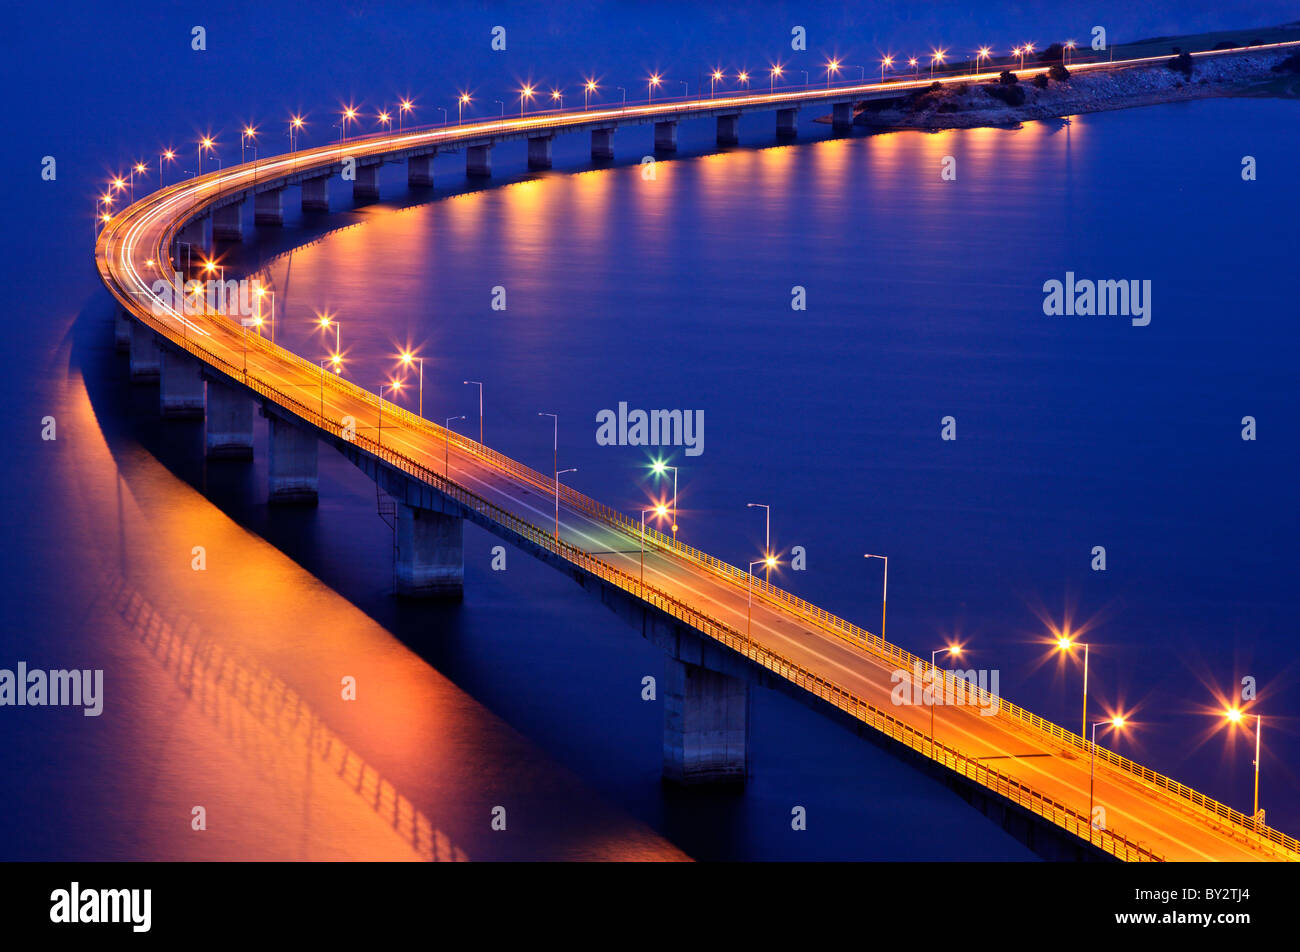 This is the Servia bridge over Polyfytou Lake, close to the small town of Servia in Kozani Prefecture, Macedonia, - Stock Image